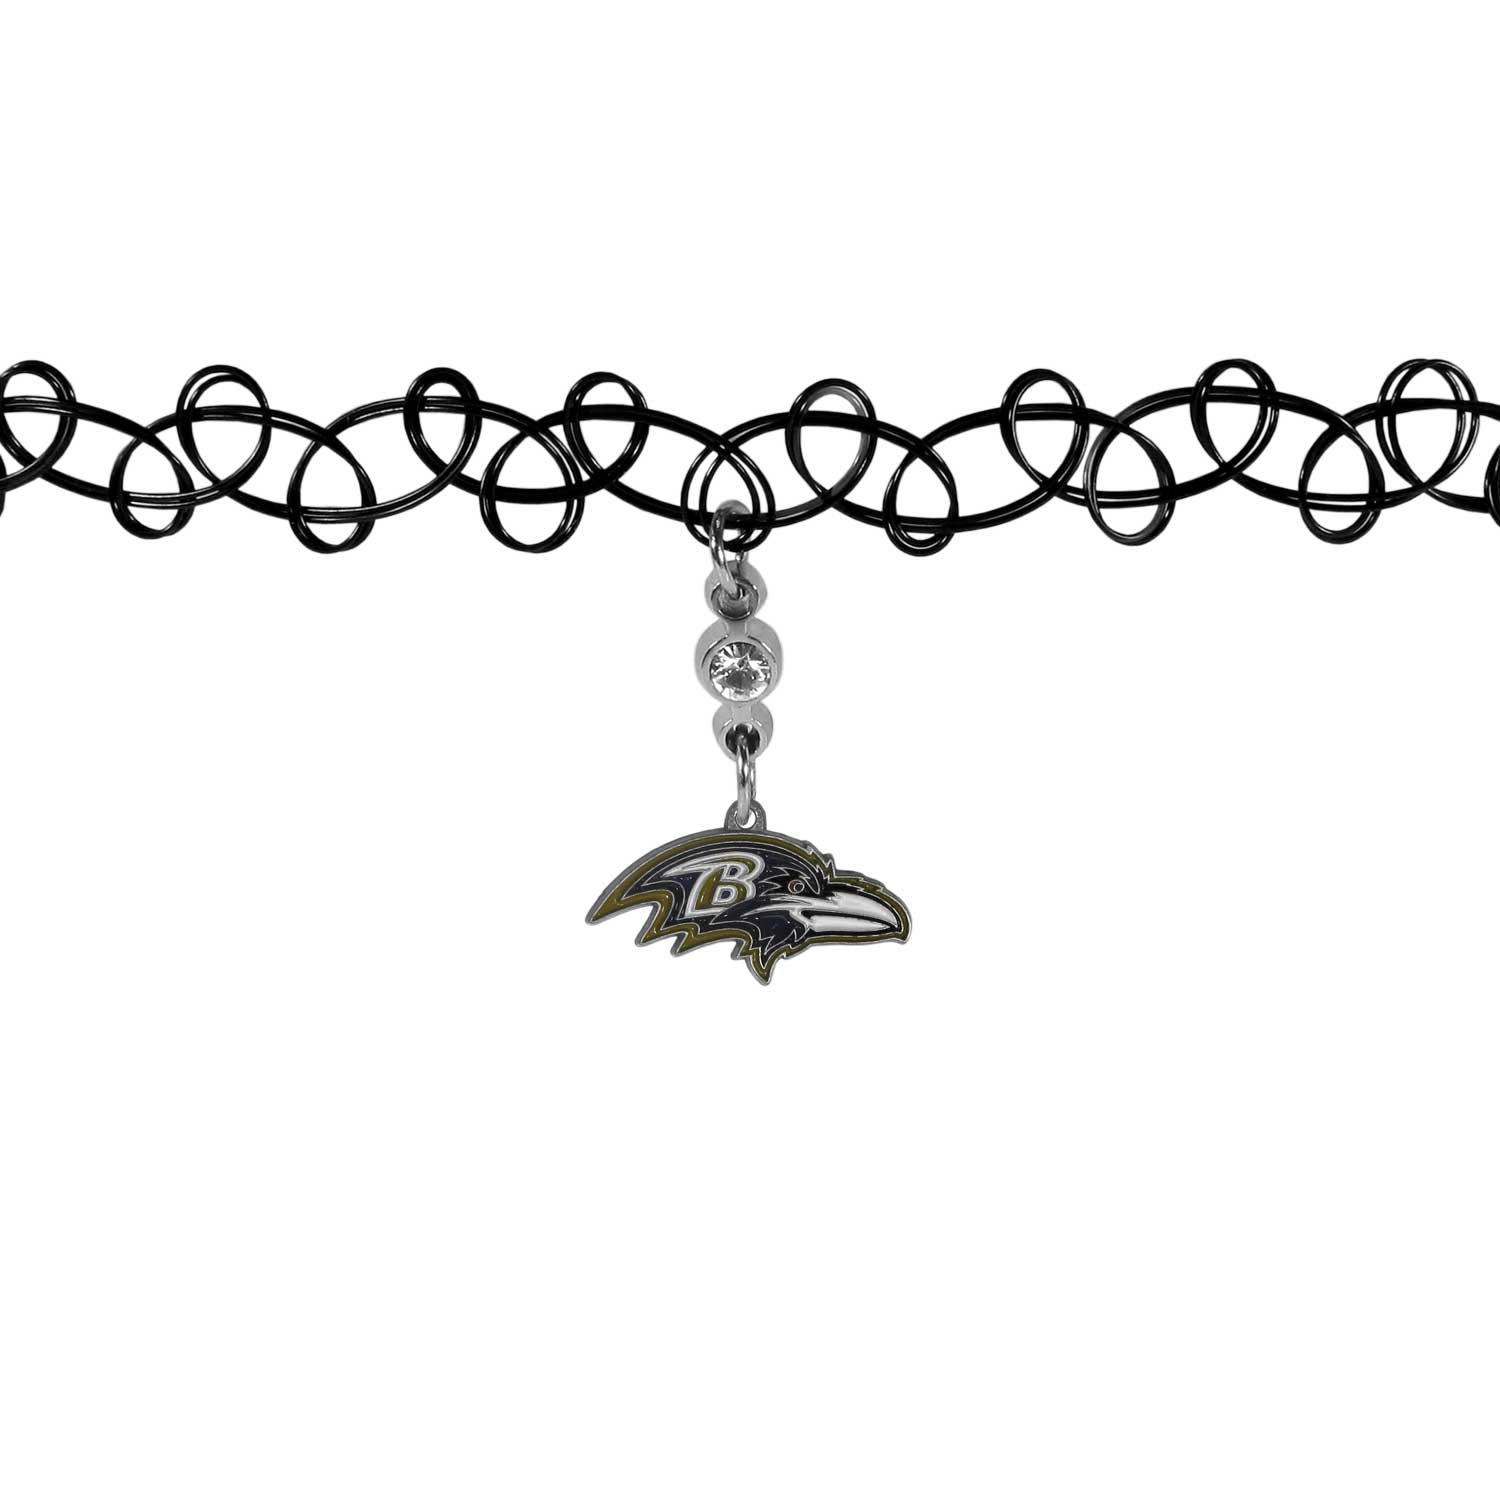 Baltimore Ravens Knotted Choker - This retro, knotted choker is a cool and unique piece of fan jewelry. The tattoo style choker features a high polish Baltimore Ravens charm with rhinestone accents.